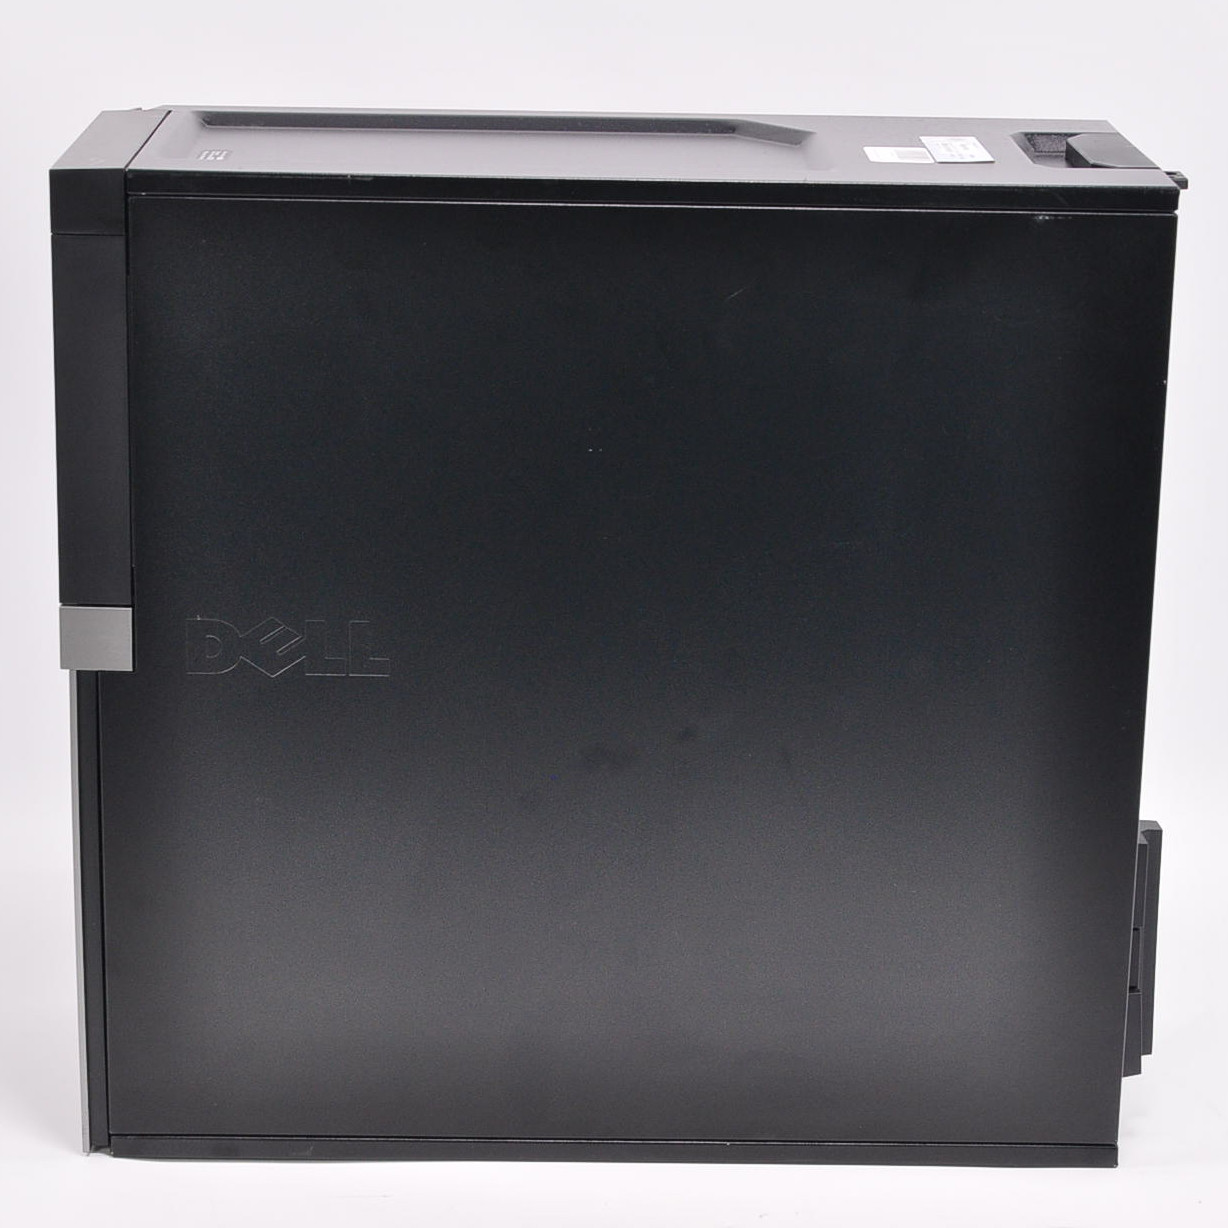 Refurbished Dell optiplex 980 Mini Tower - Side case view